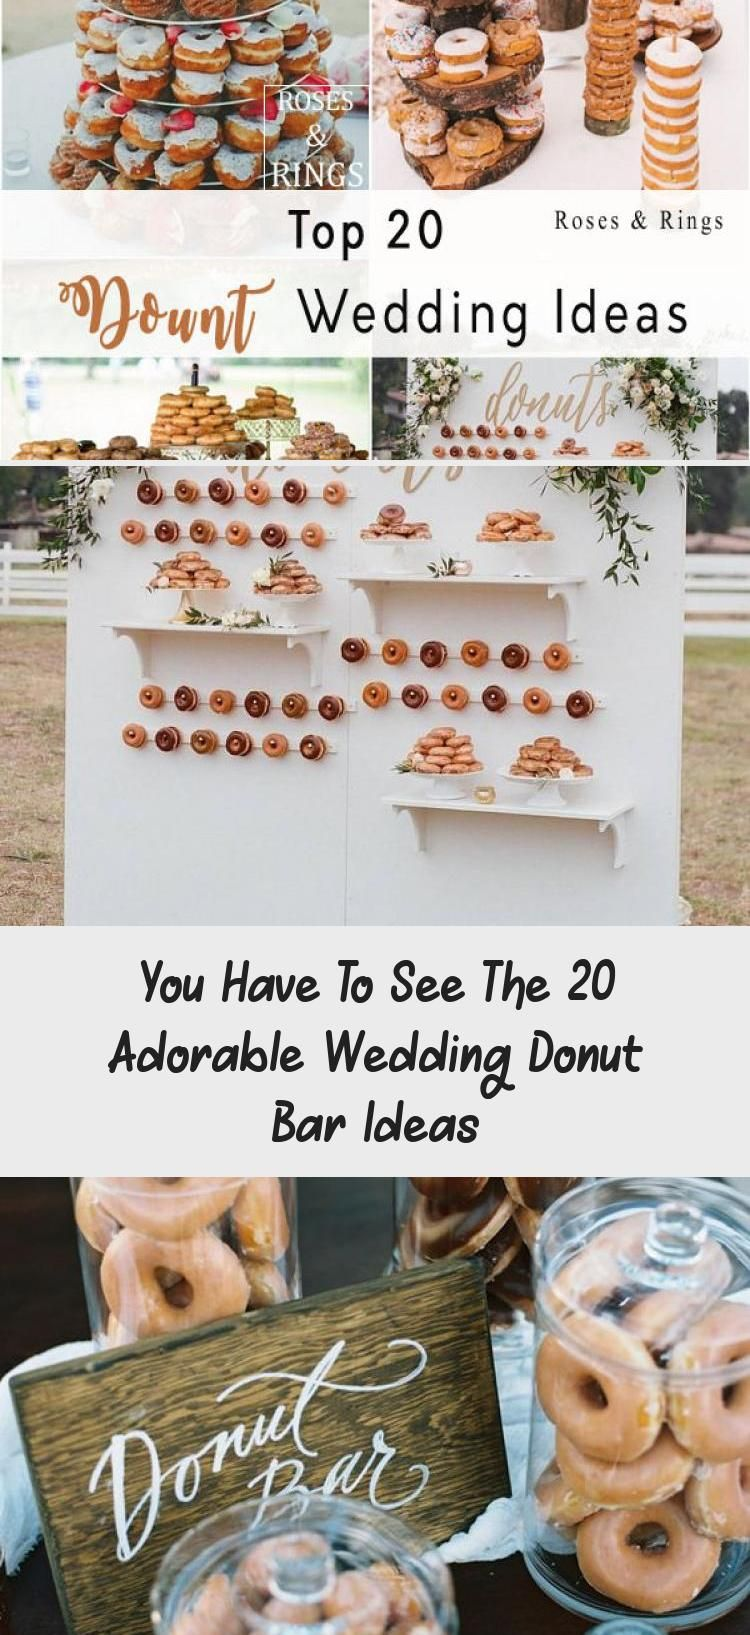 You Have To See The 20 Adorable Wedding Donut Bar Ideas half cake half donuts wedding cake ideas